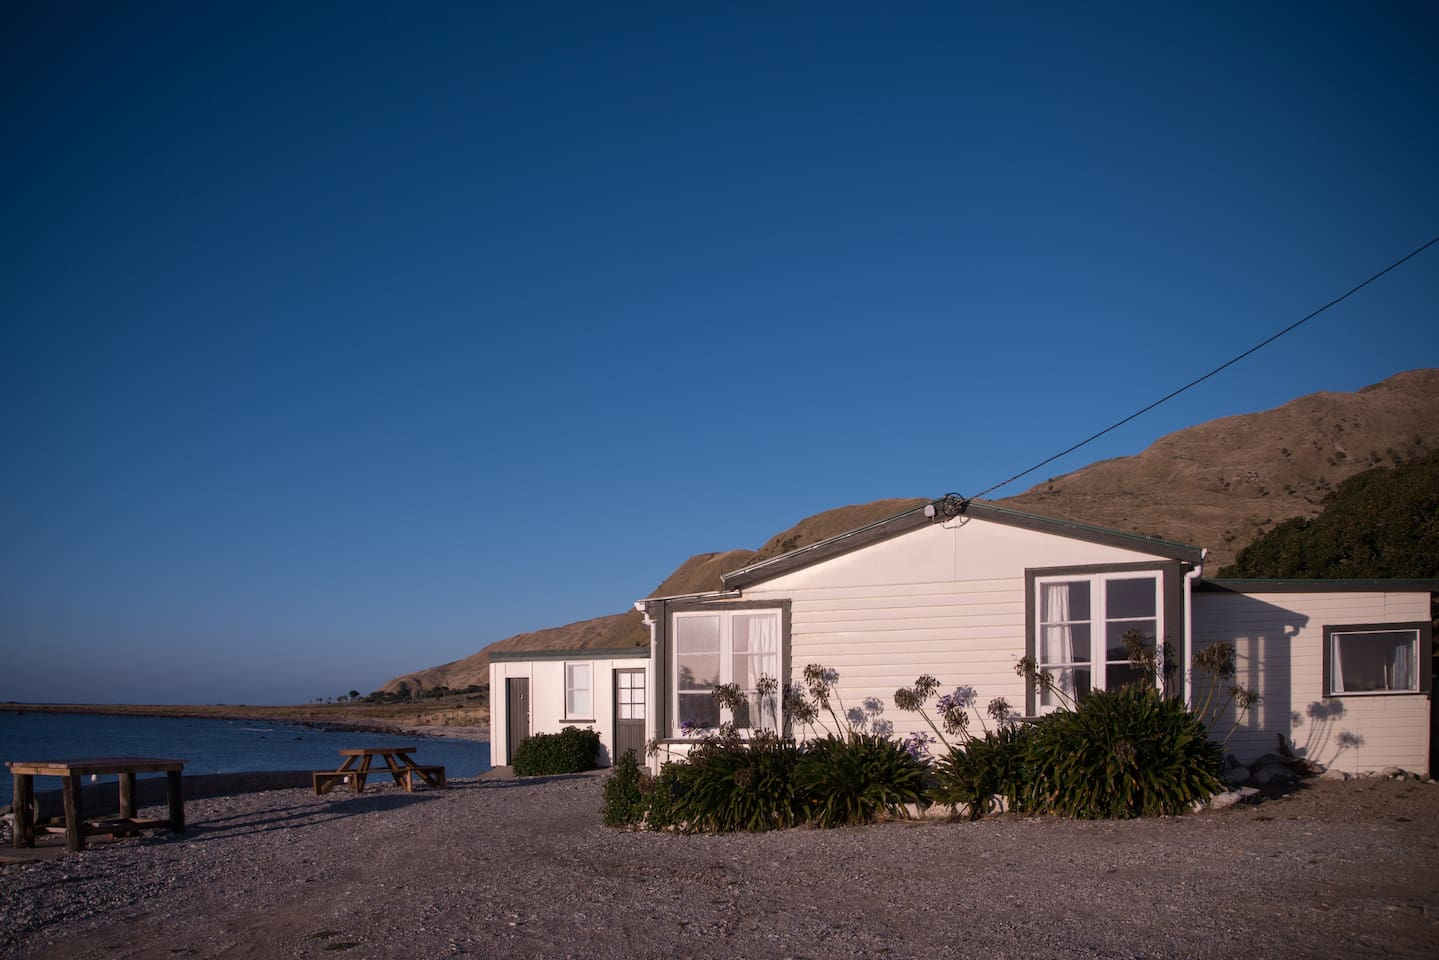 The Diver and fisherman paradise, this bach is on the shoreline. Russ's Bach is your typical kiwi bach - but with a one in a kind view.